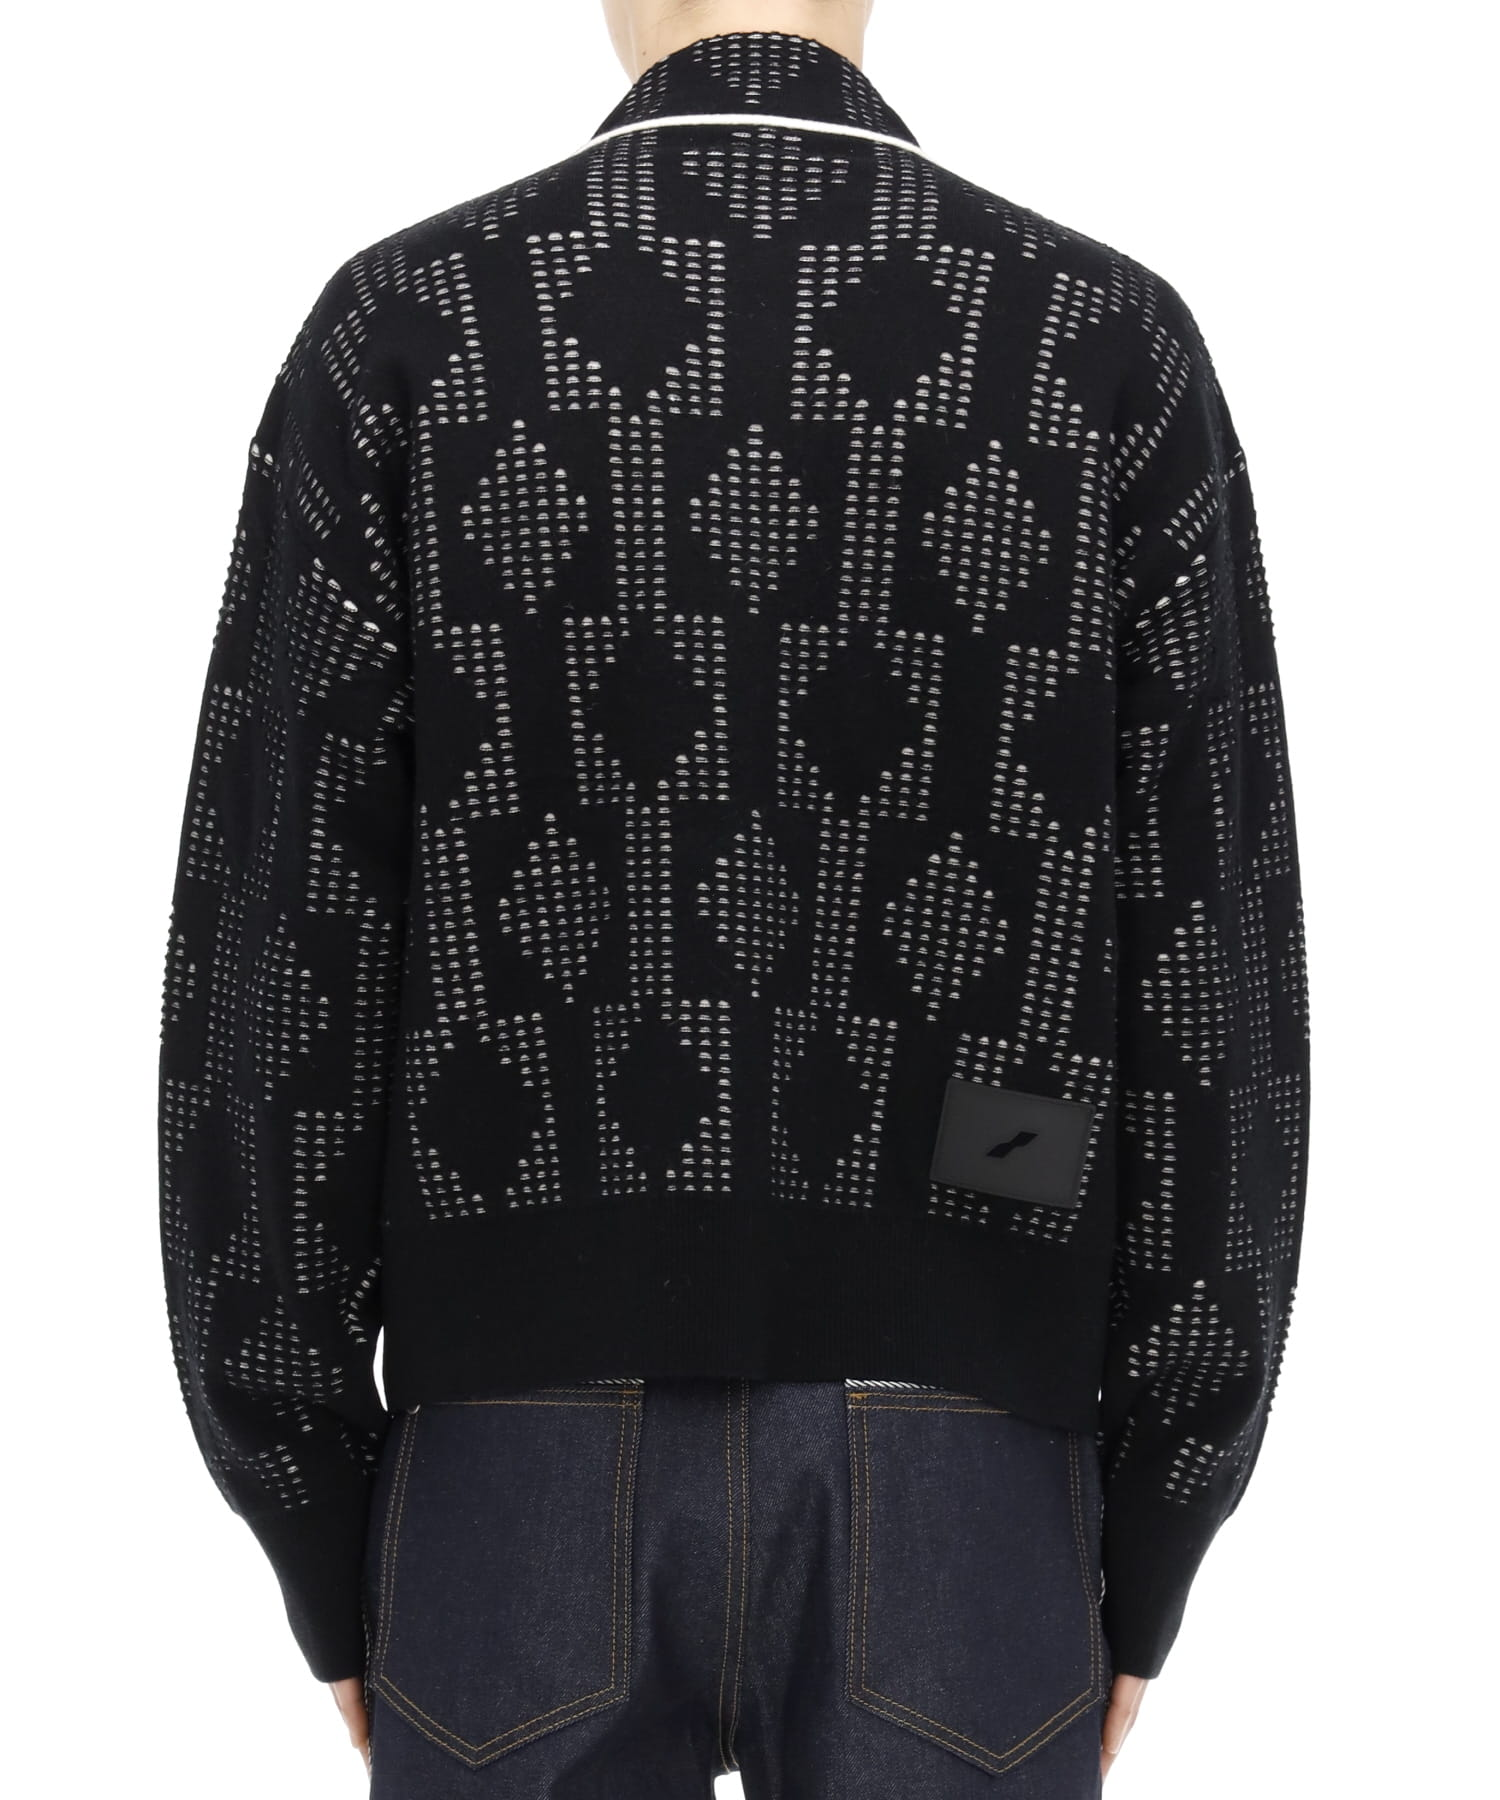 BLACK DOT GEOMETRIC JACQUARD JACKET